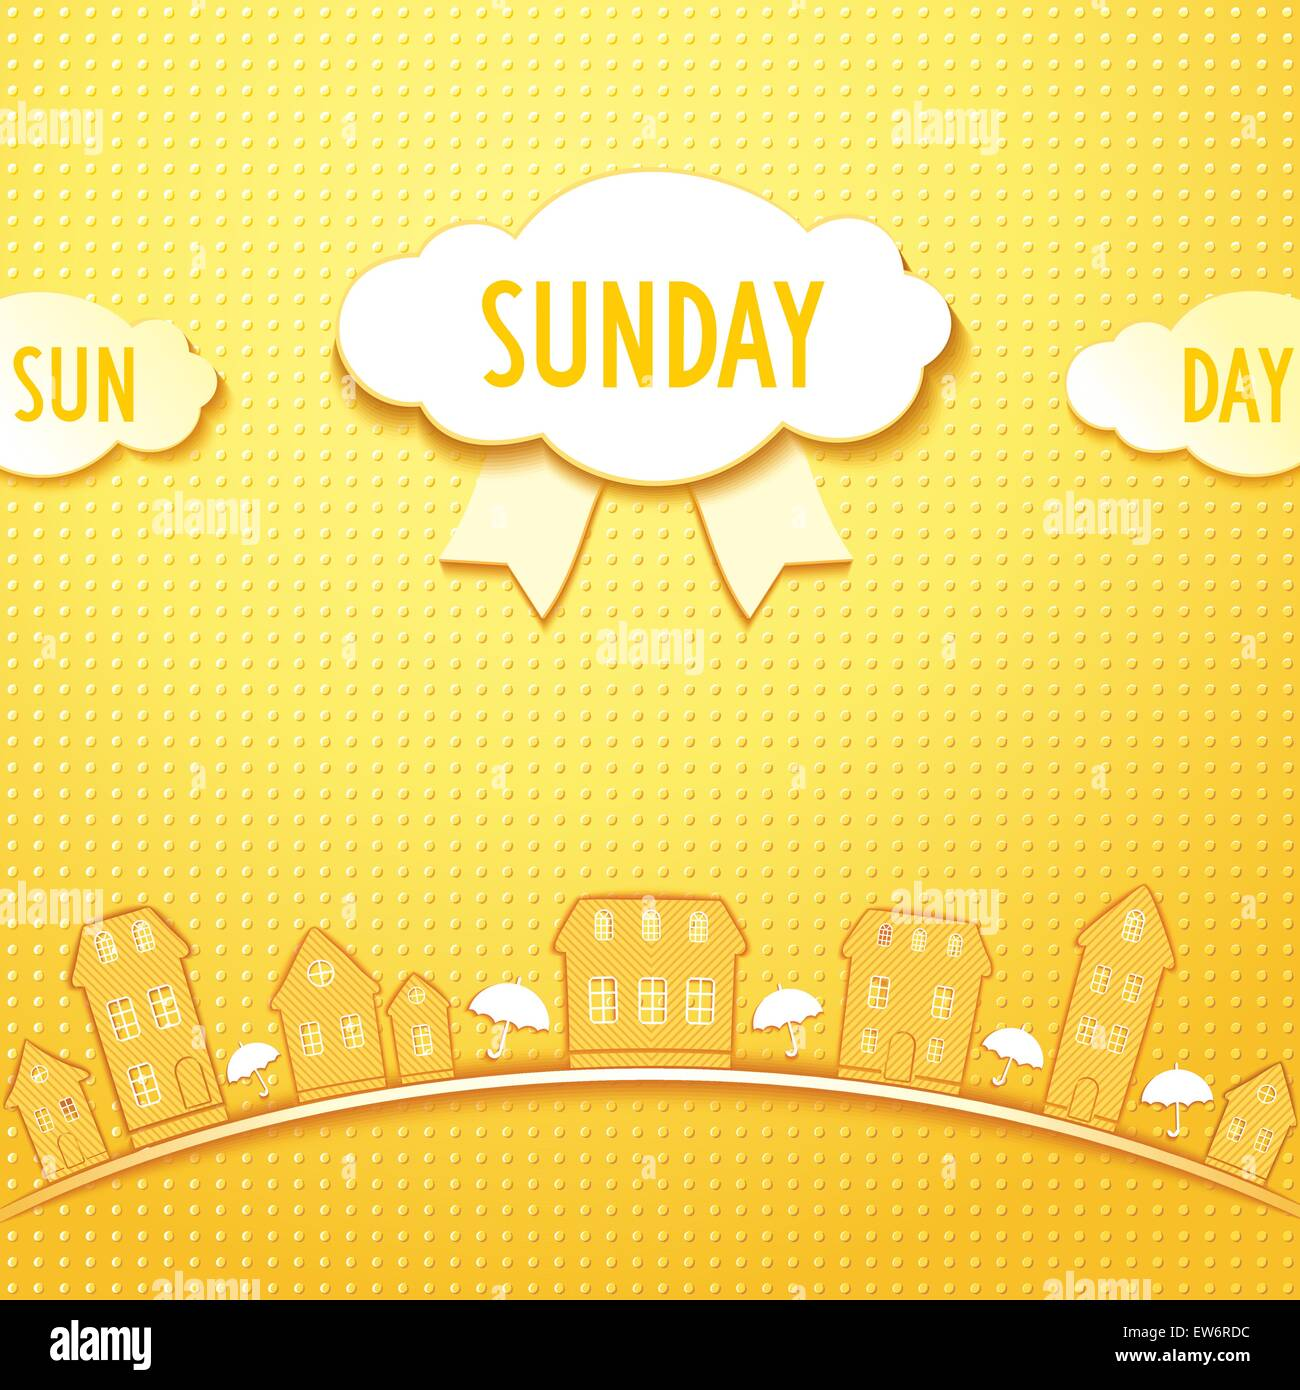 Sunday in city with sun umbrellas and clouds. Vector eps 10 - Stock Vector